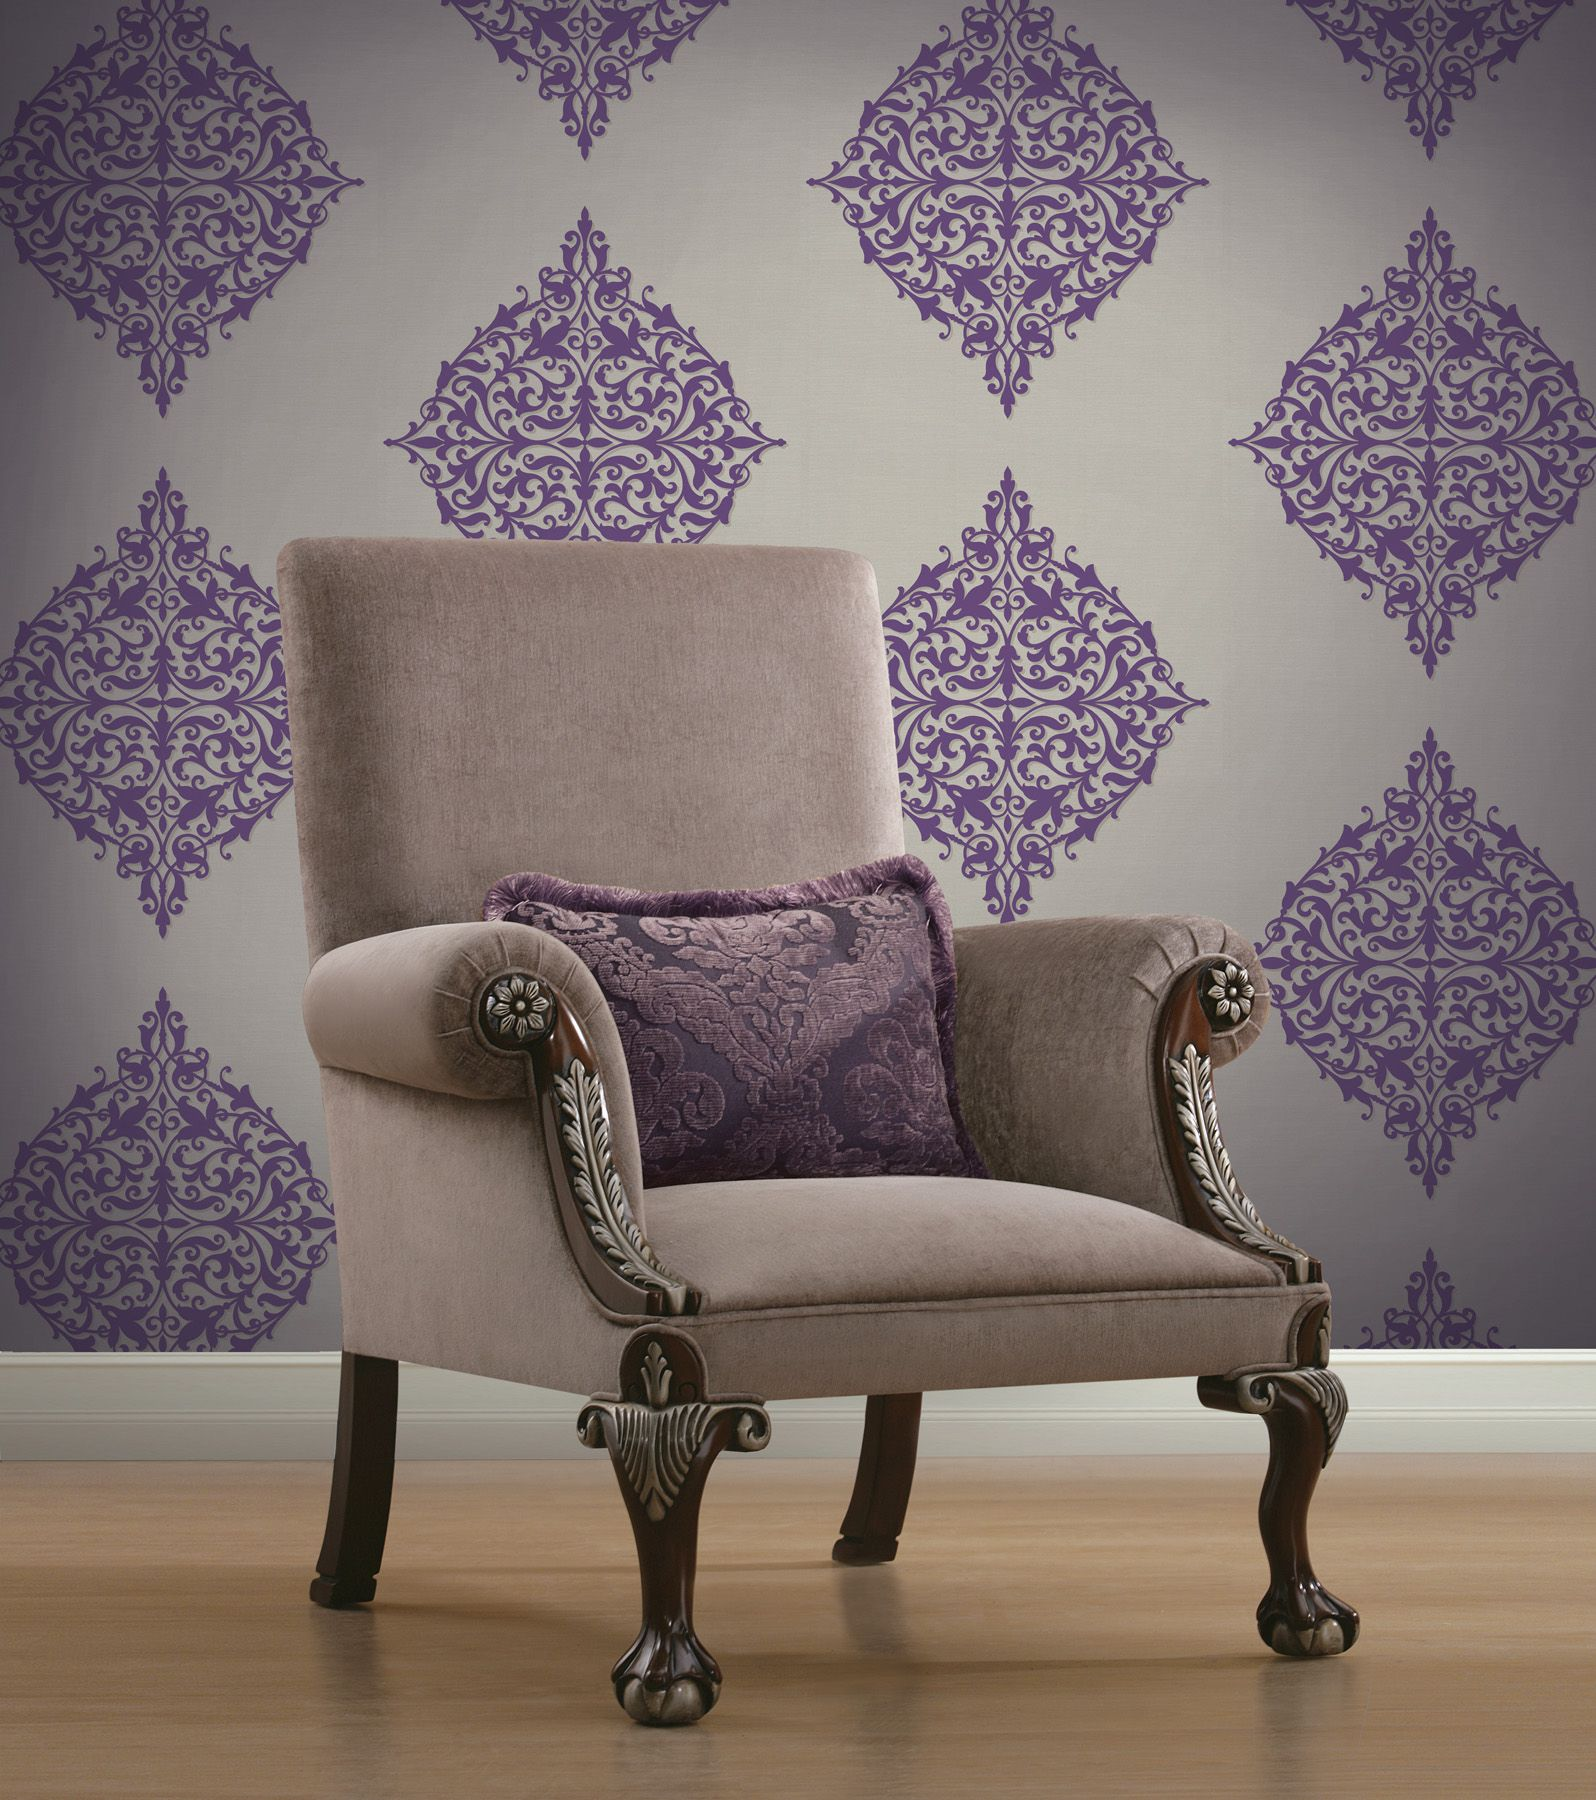 puple living room decor idea with a modern medallion